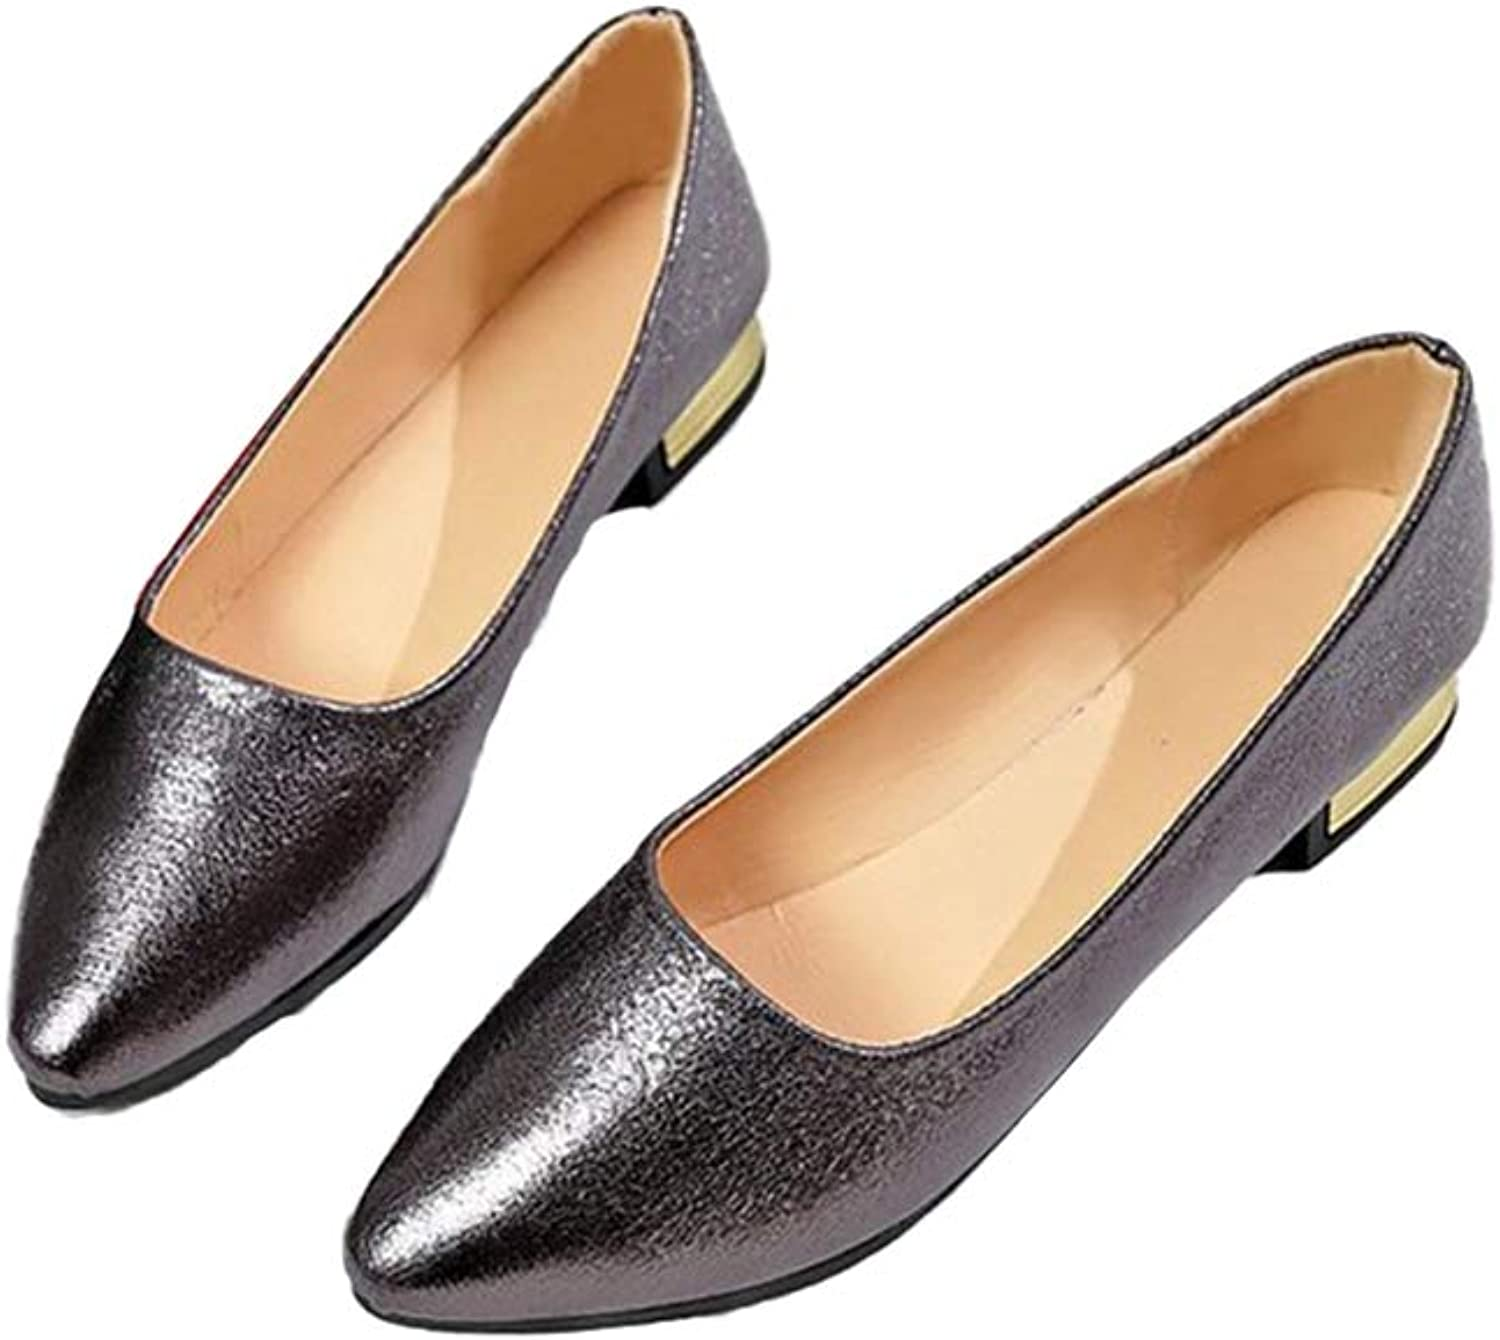 Women Flats shoes Pointed Toe Slip-On Solid color Fashion Dress Flats shoes